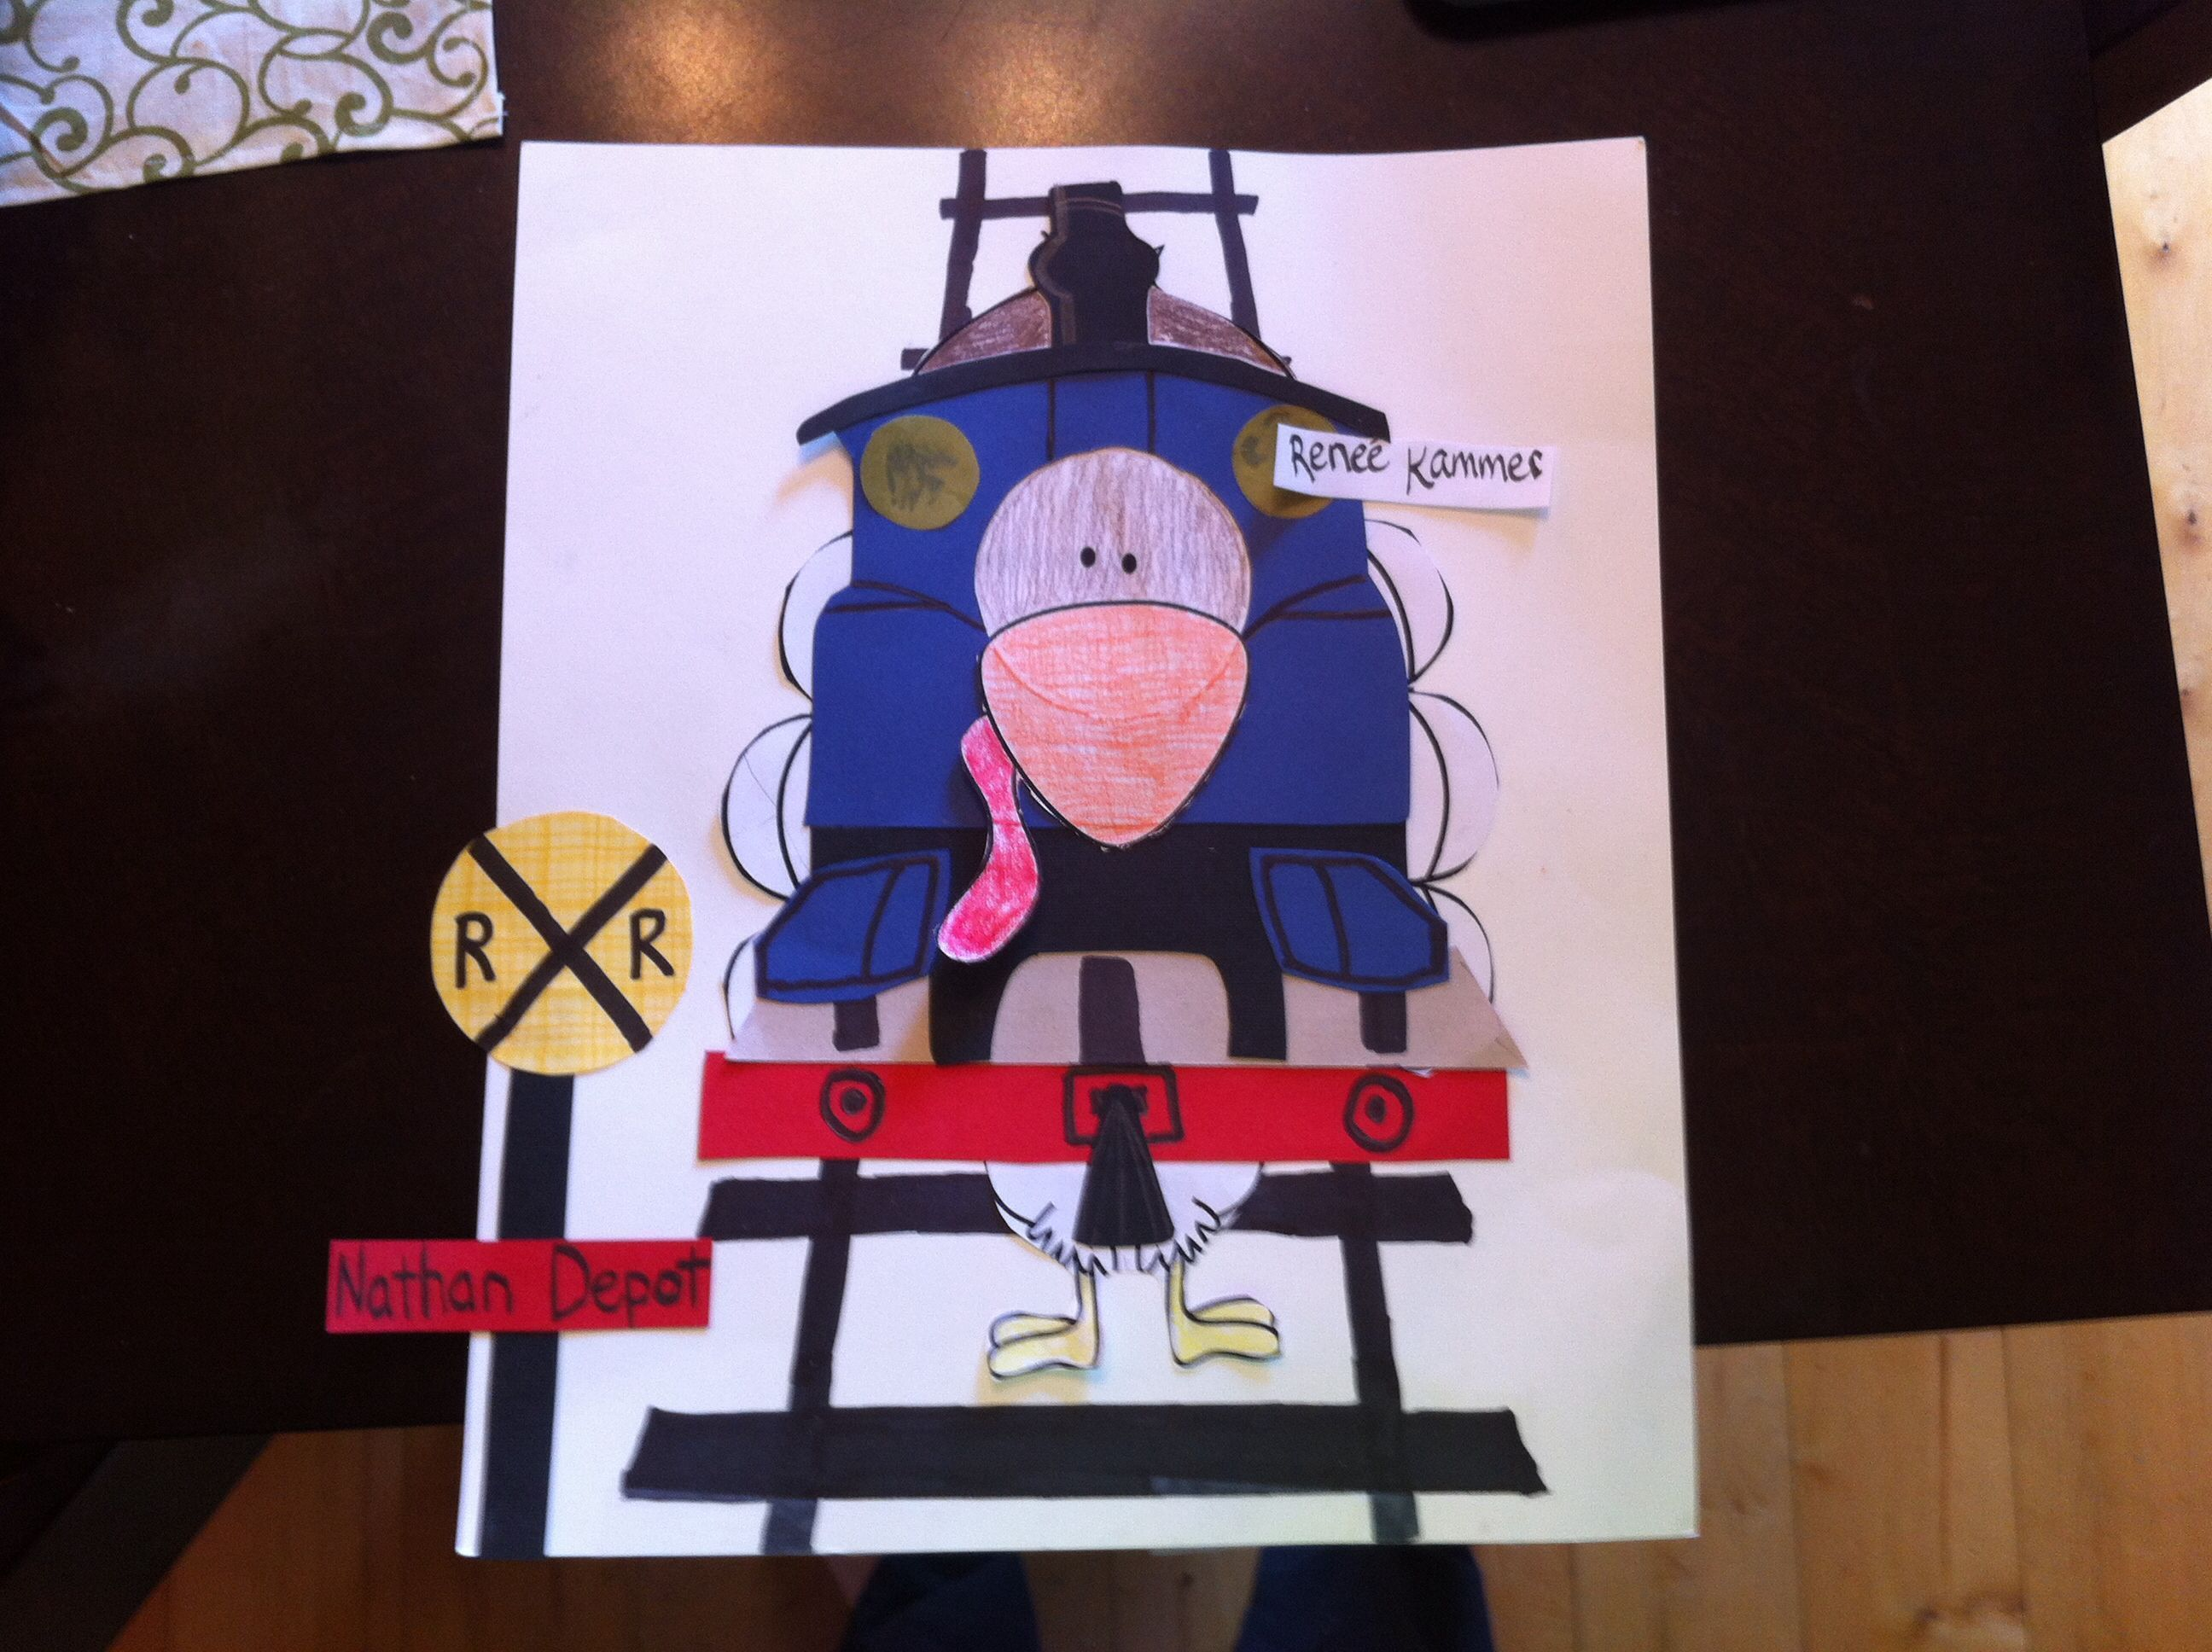 Disguise a turkey project as Thomas the Train #disguiseaturkeyideas Disguise a turkey project as Thomas the Train #disguiseaturkey Disguise a turkey project as Thomas the Train #disguiseaturkeyideas Disguise a turkey project as Thomas the Train #turkeyprojectsforkids Disguise a turkey project as Thomas the Train #disguiseaturkeyideas Disguise a turkey project as Thomas the Train #disguiseaturkey Disguise a turkey project as Thomas the Train #disguiseaturkeyideas Disguise a turkey project as Thom #turkeyprojectsforkids